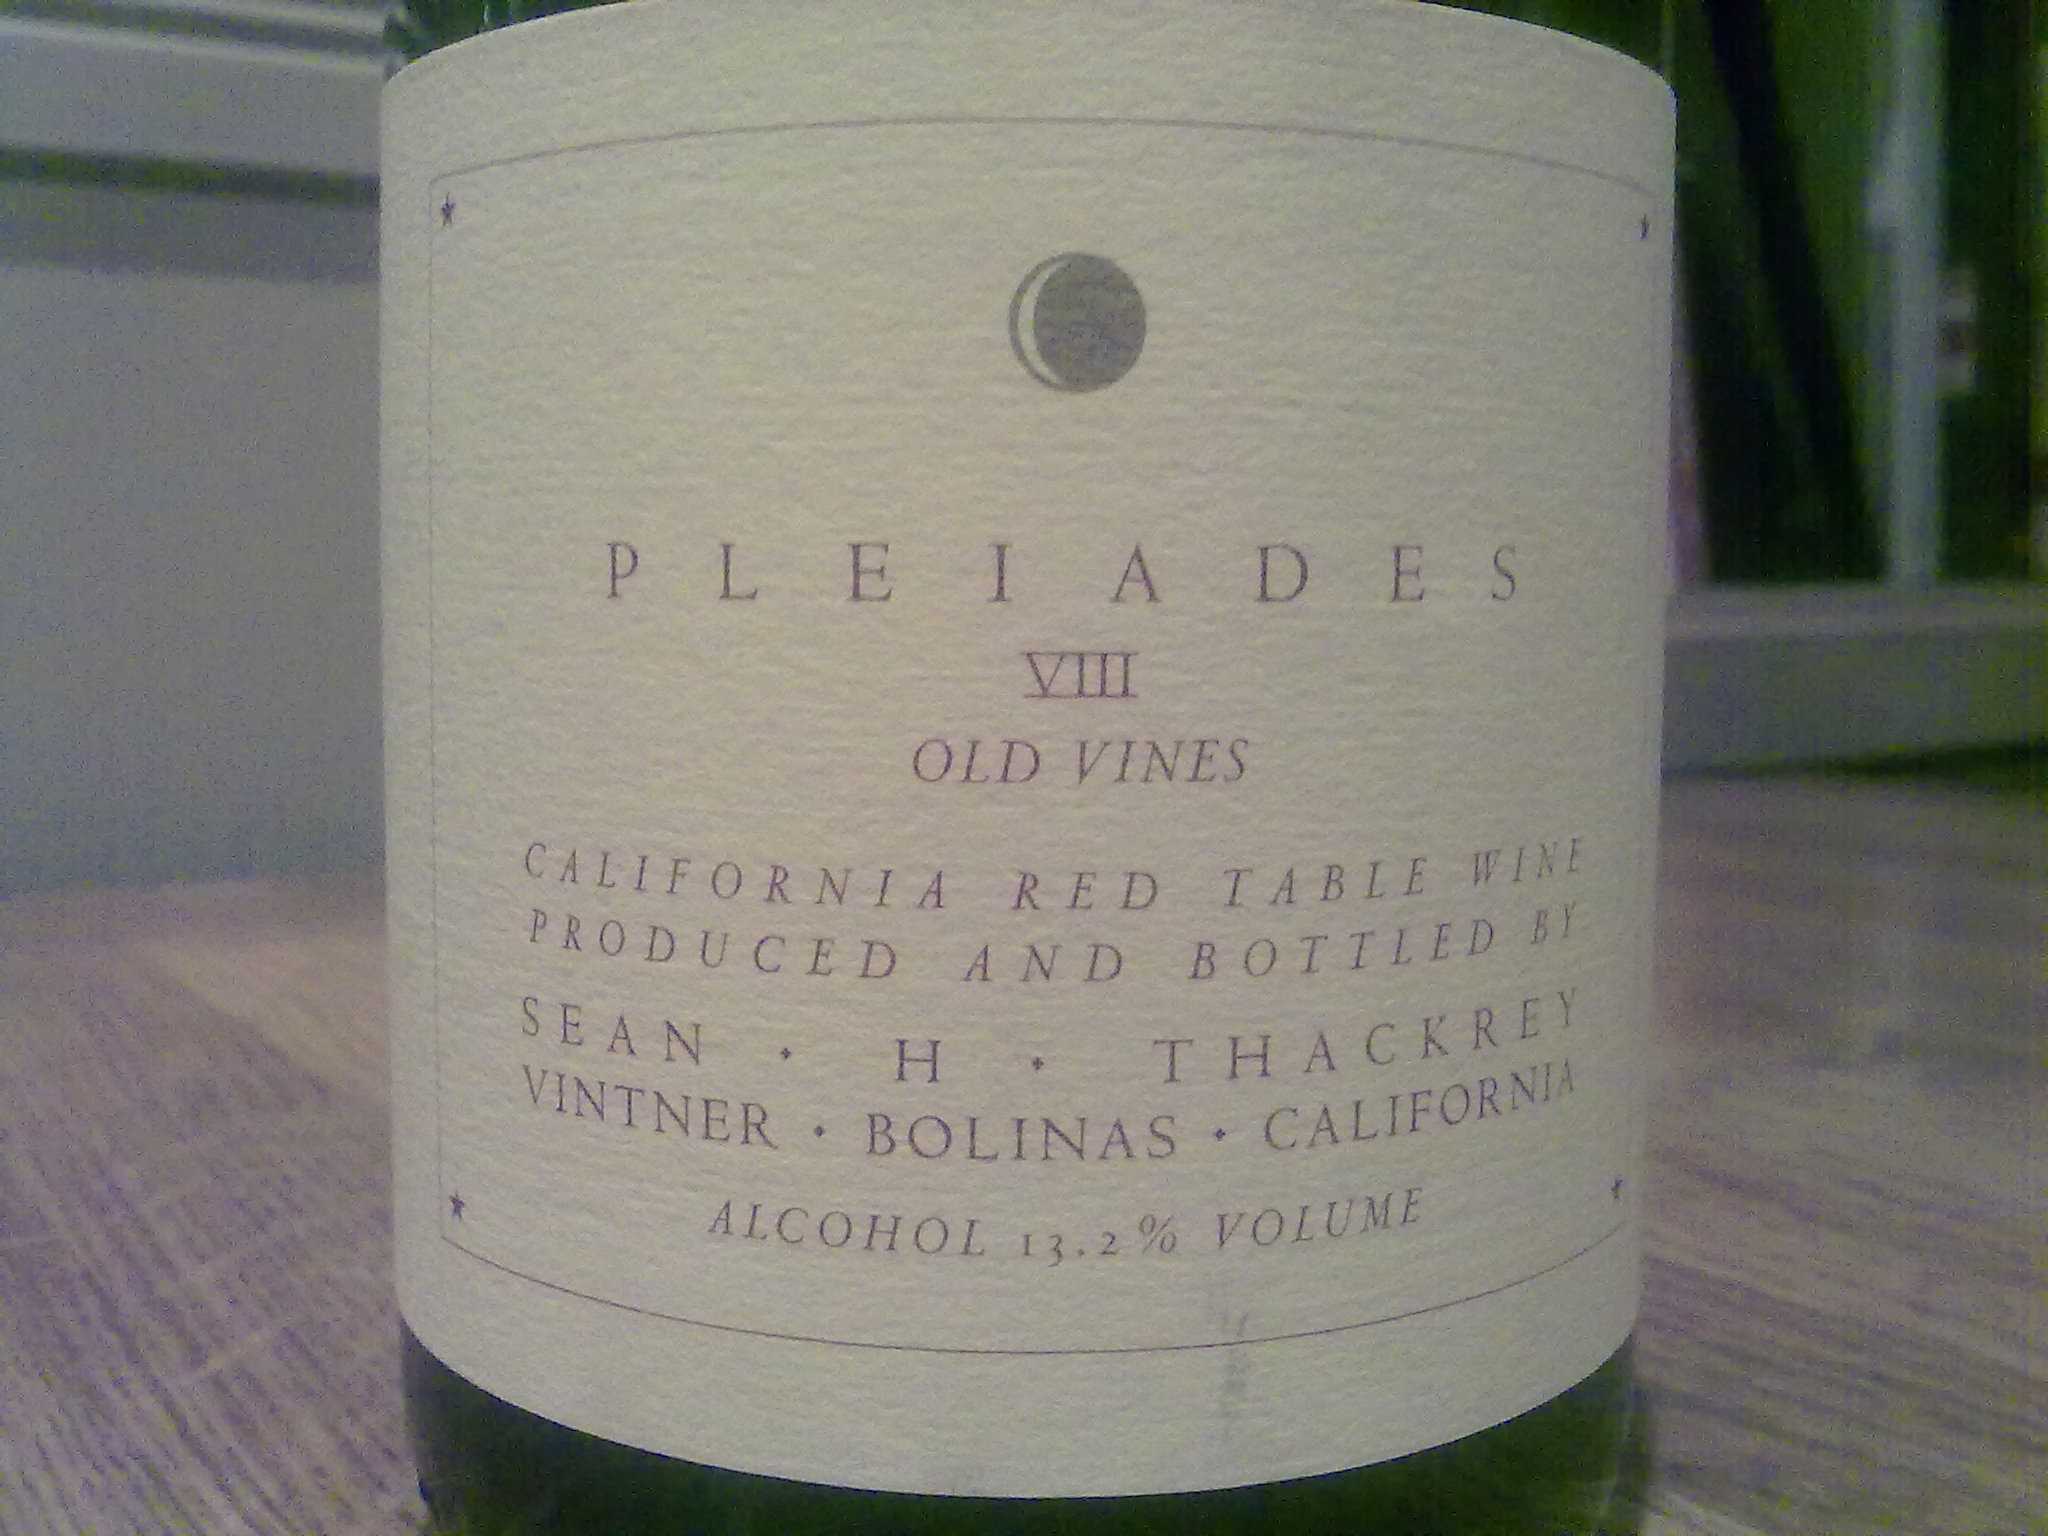 Still very fresh with a long, dry finish with mild, mature tannins.